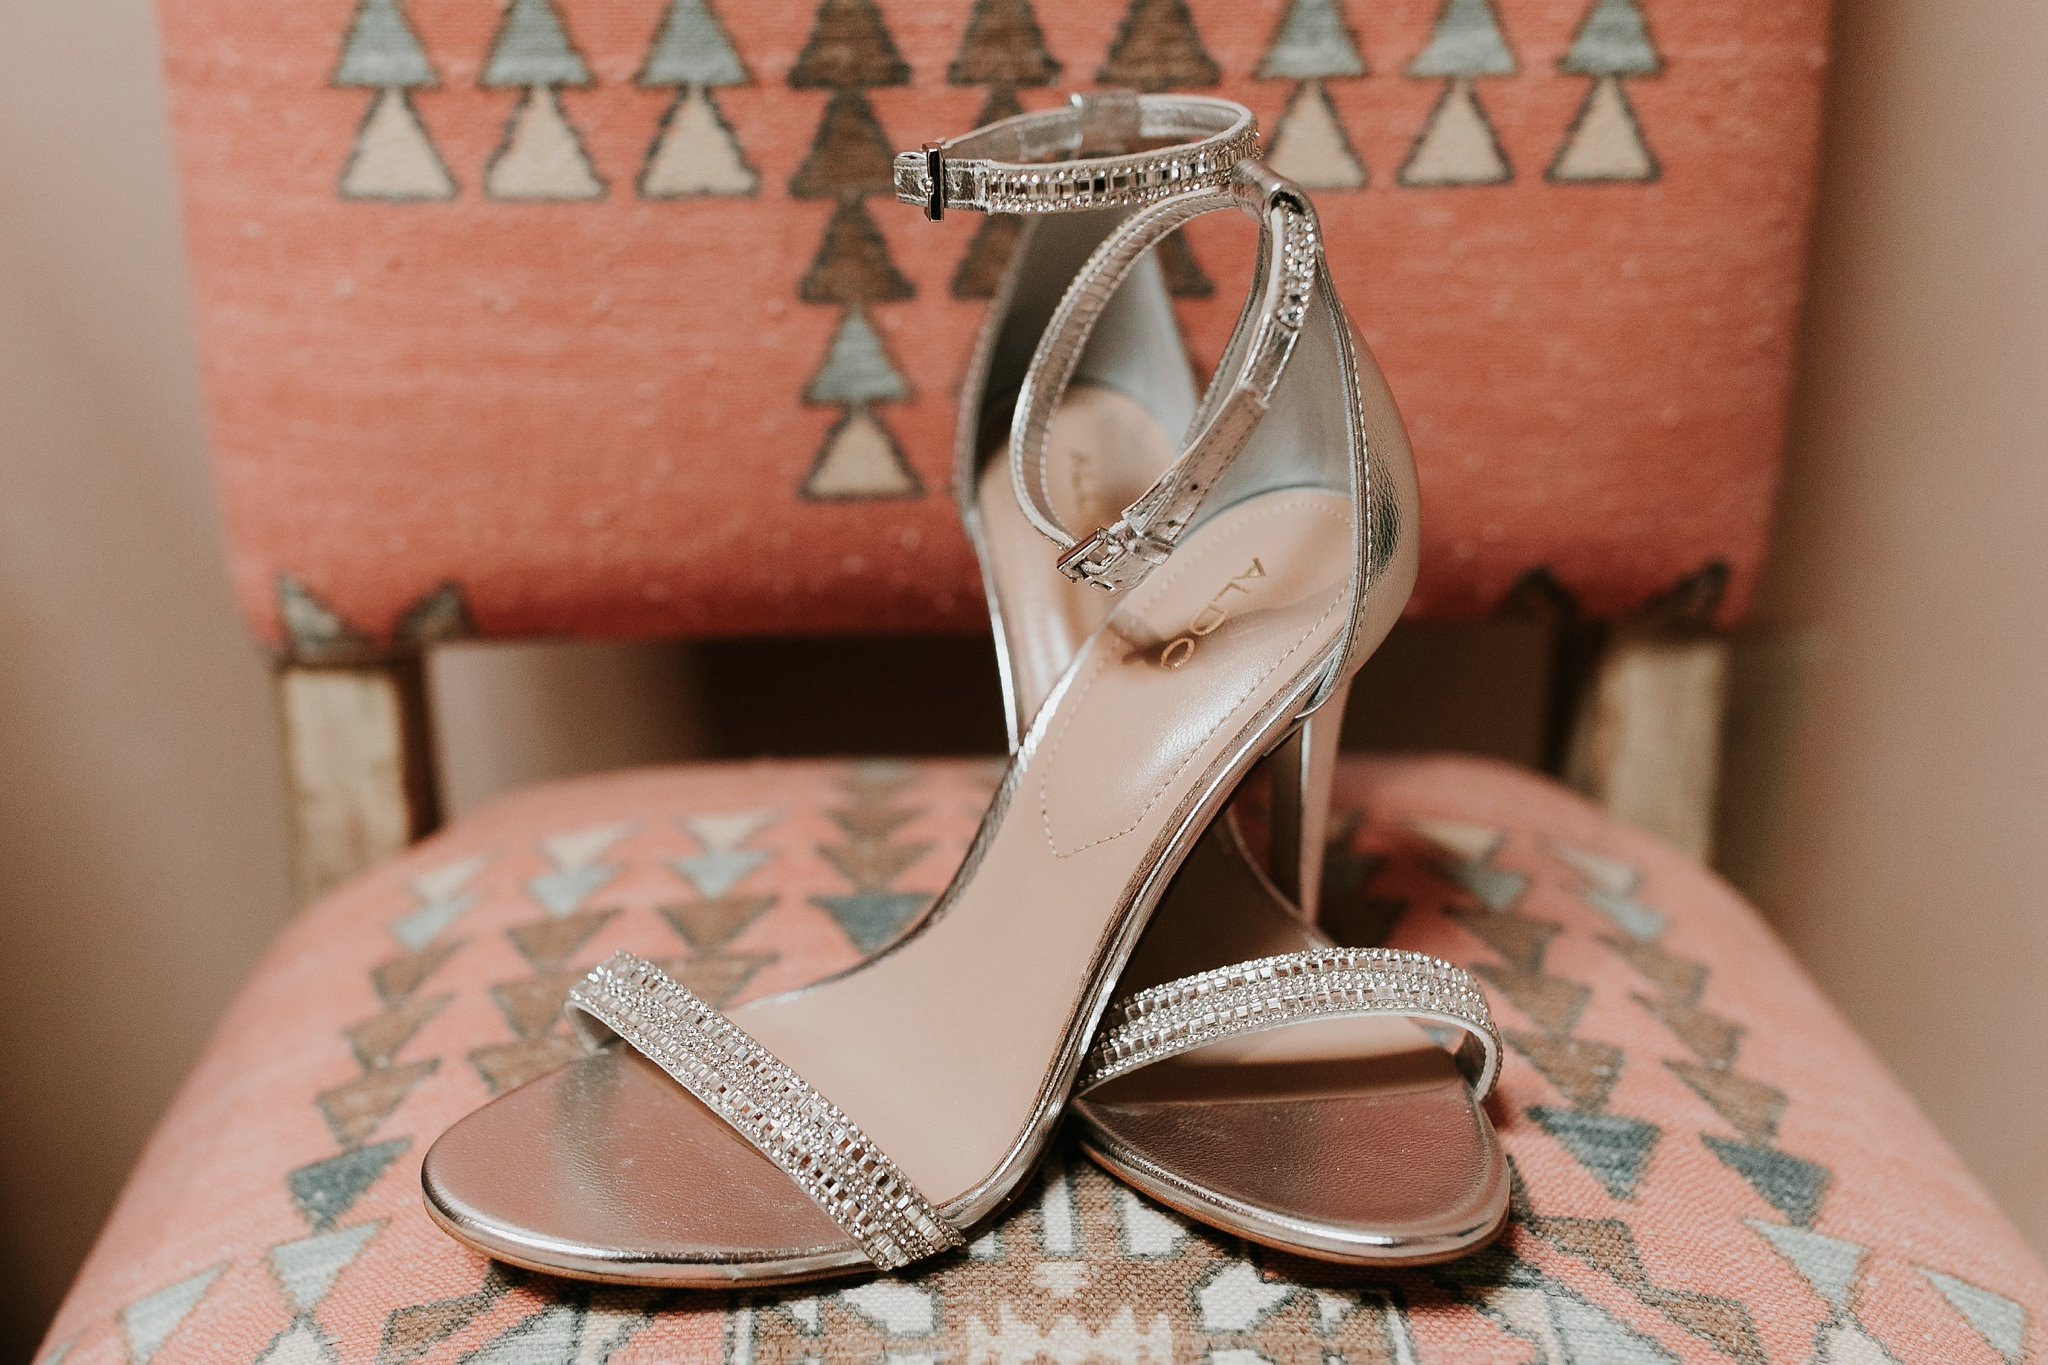 Alicia+lucia+photography+-+albuquerque+wedding+photographer+-+santa+fe+wedding+photography+-+new+mexico+wedding+photographer+-+new+mexico+wedding+-+new+mexico+wedding+-+colorado+wedding+-+bridal+shoes+-+bridal+inspo_0049.jpg